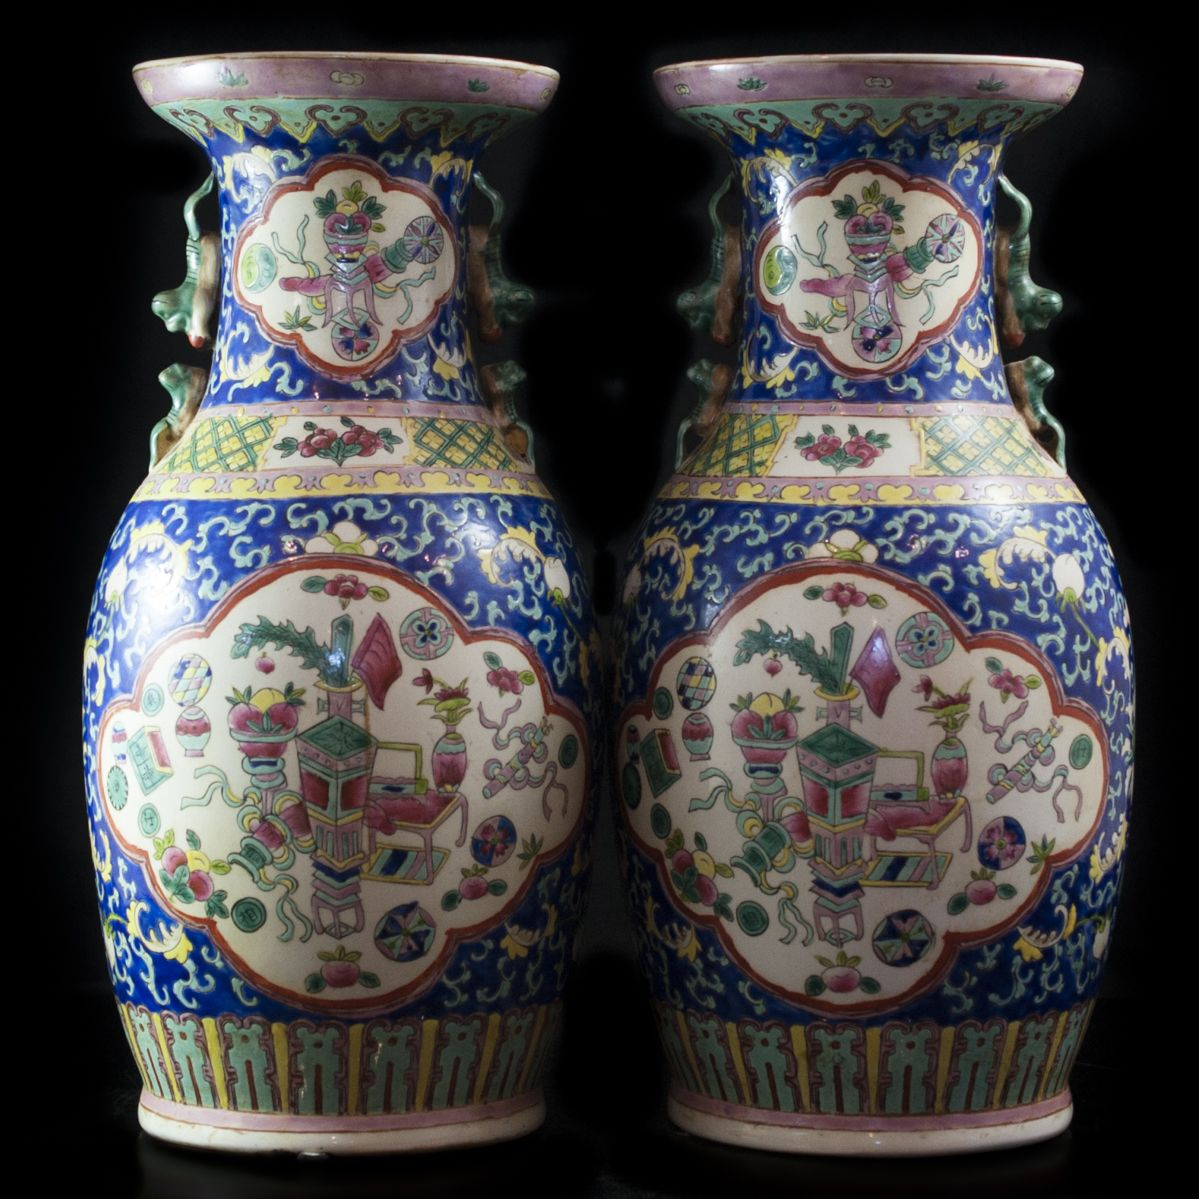 Descriptionpair of antique chinese porcelain vases the body descriptionpair of antique chinese porcelain vases the body comprises of renderings of elegant vases with bouquets of flowers surrounded by fruits floridaeventfo Choice Image